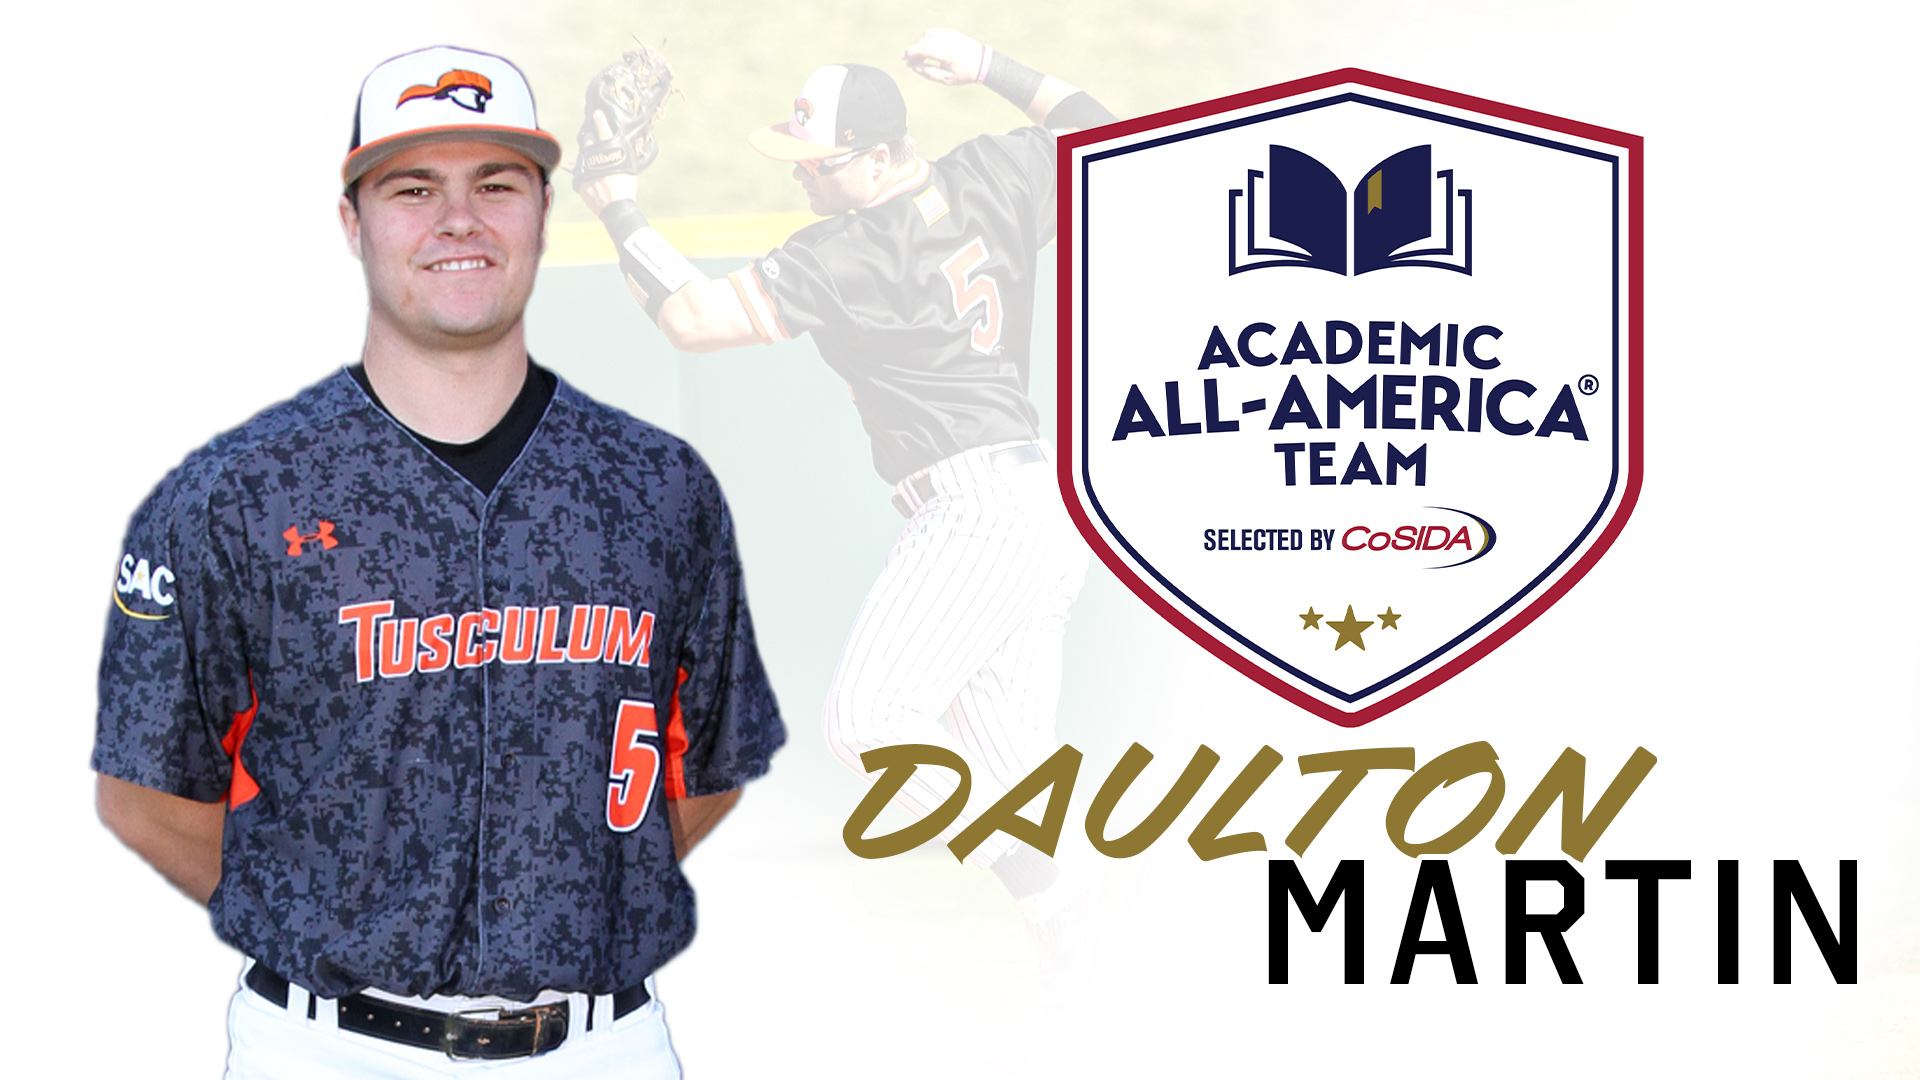 Martin named to Academic All-America baseball first team